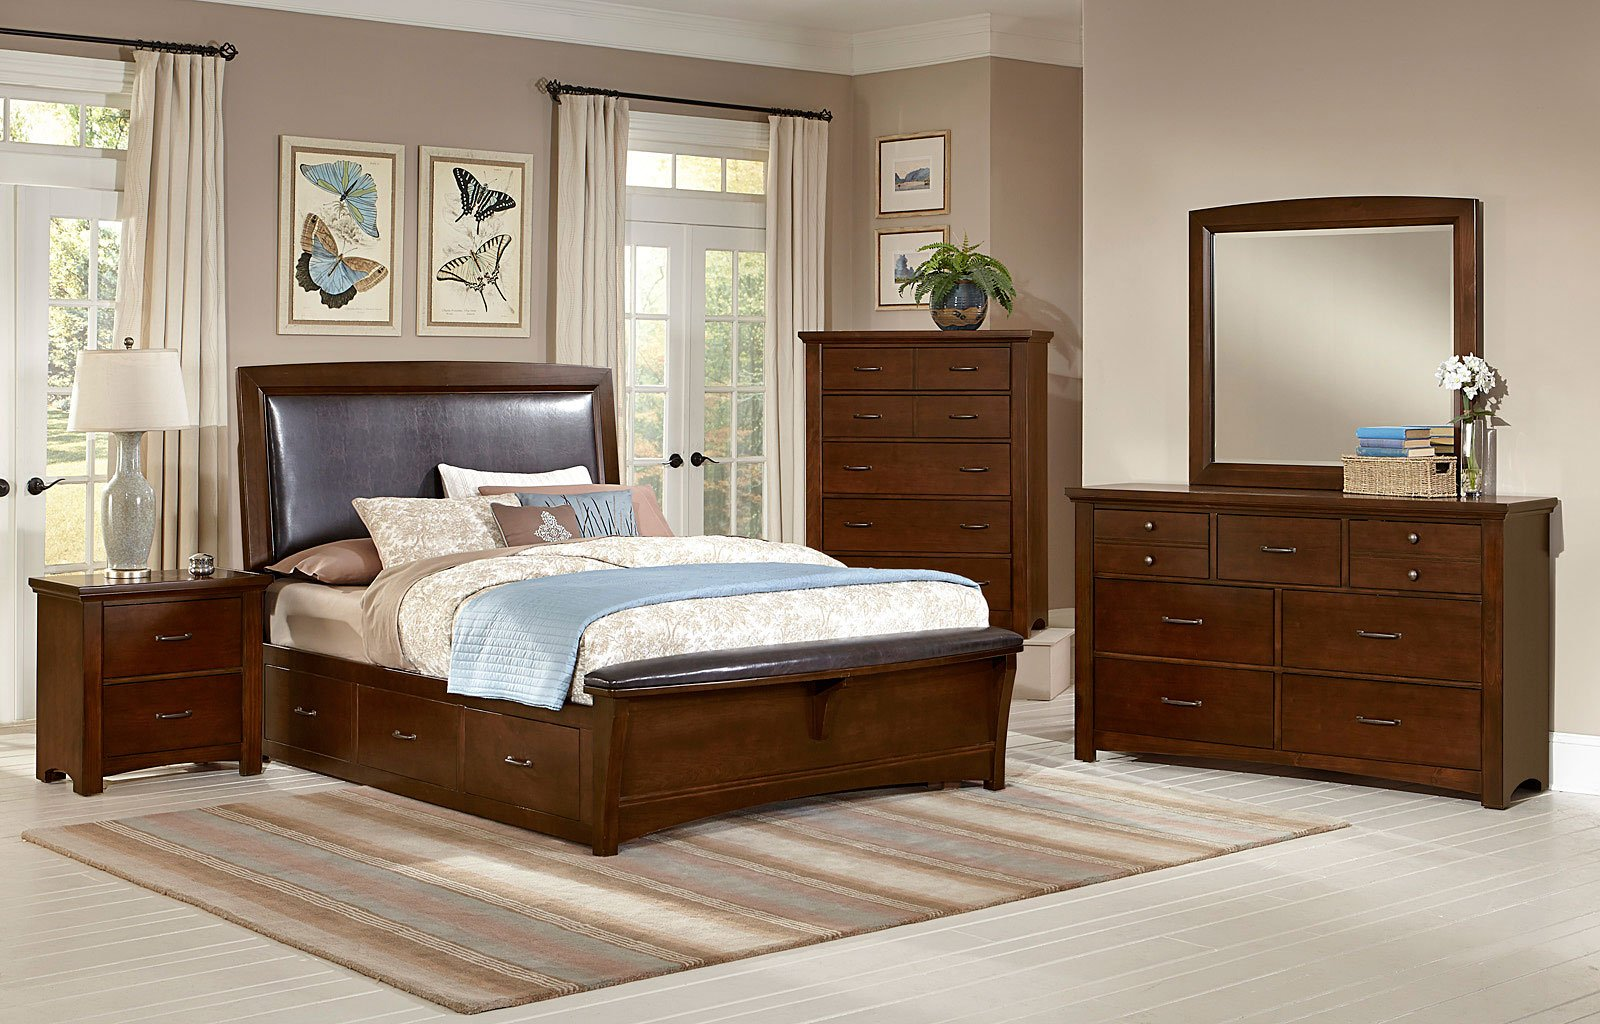 Genial Transitions Upholstered Bedroom Set W/ Two Storages (Dark Cherry) Vaughan  Bassett | Furniture Cart